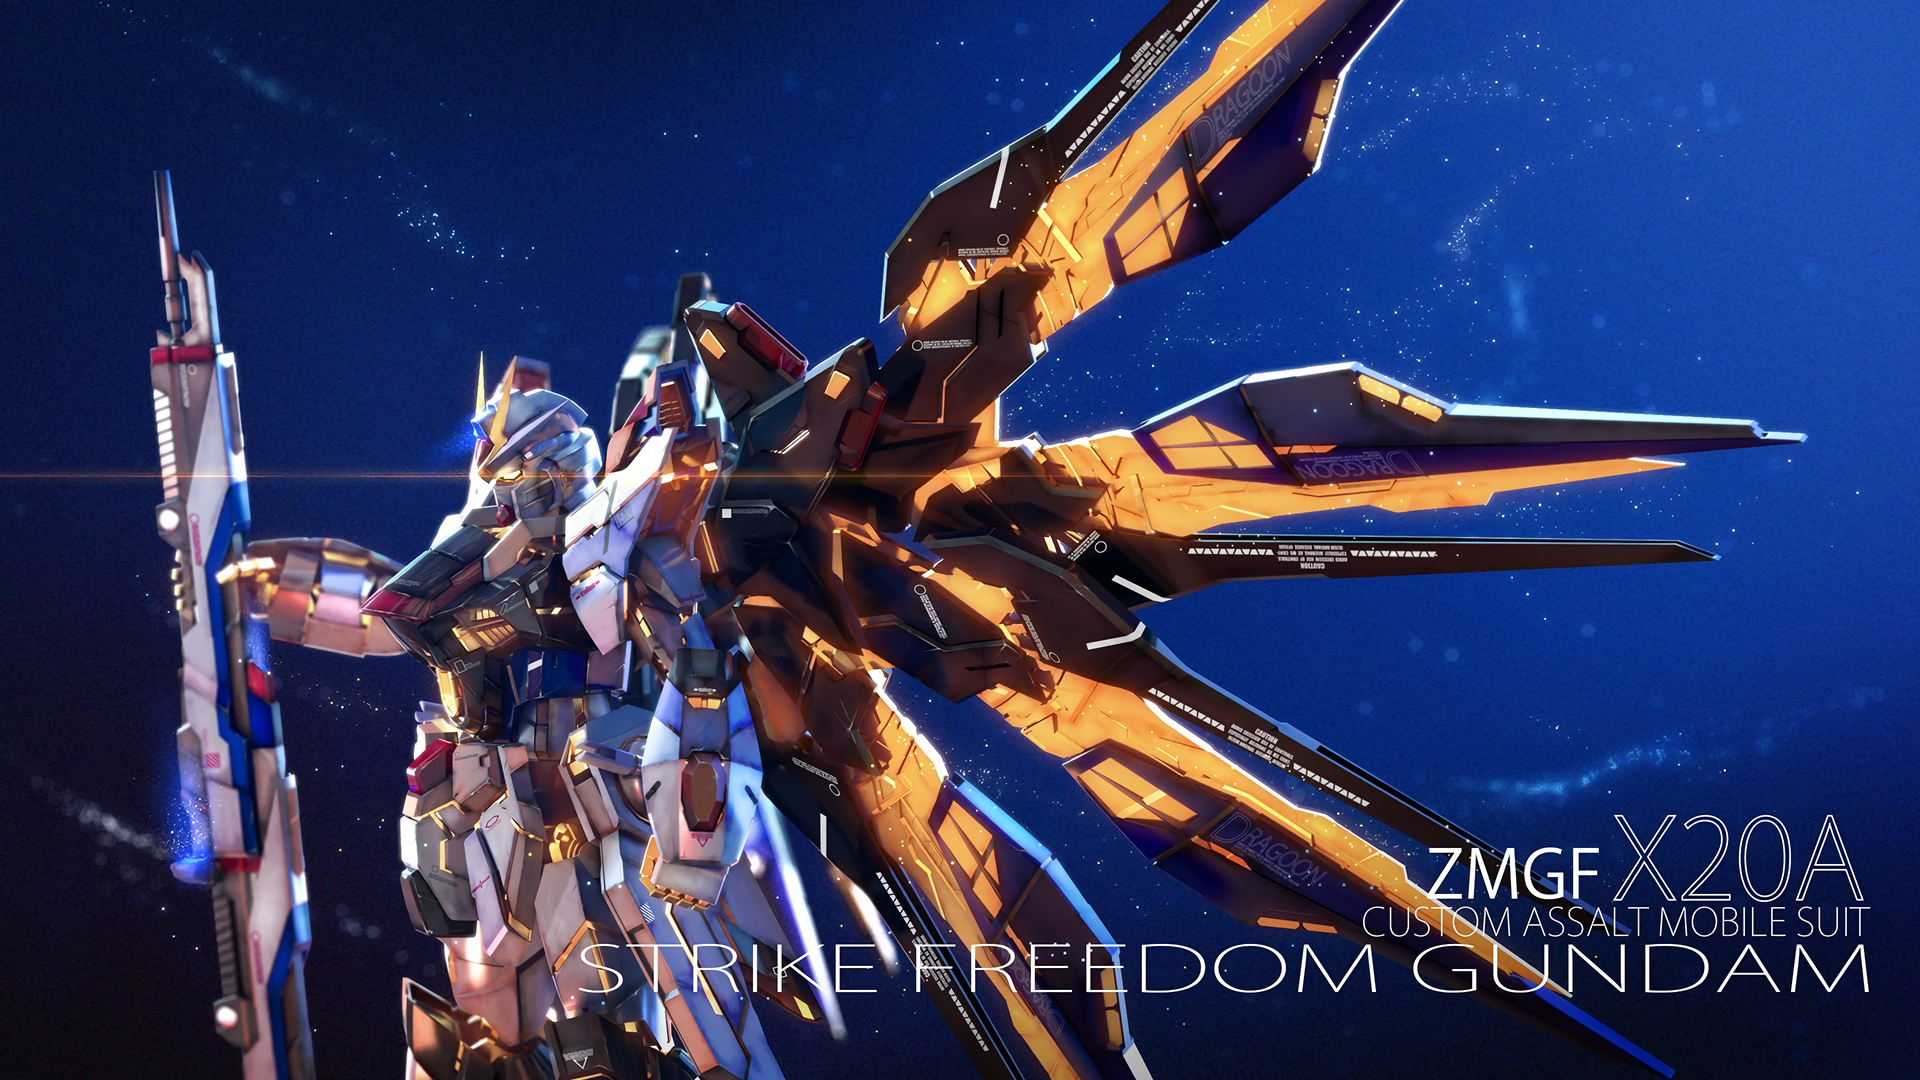 157 Mobile Suit Gundam Seed Destiny Hd Wallpapers Backgrounds With Images Gundam Seed Gundam Gundam Wallpapers